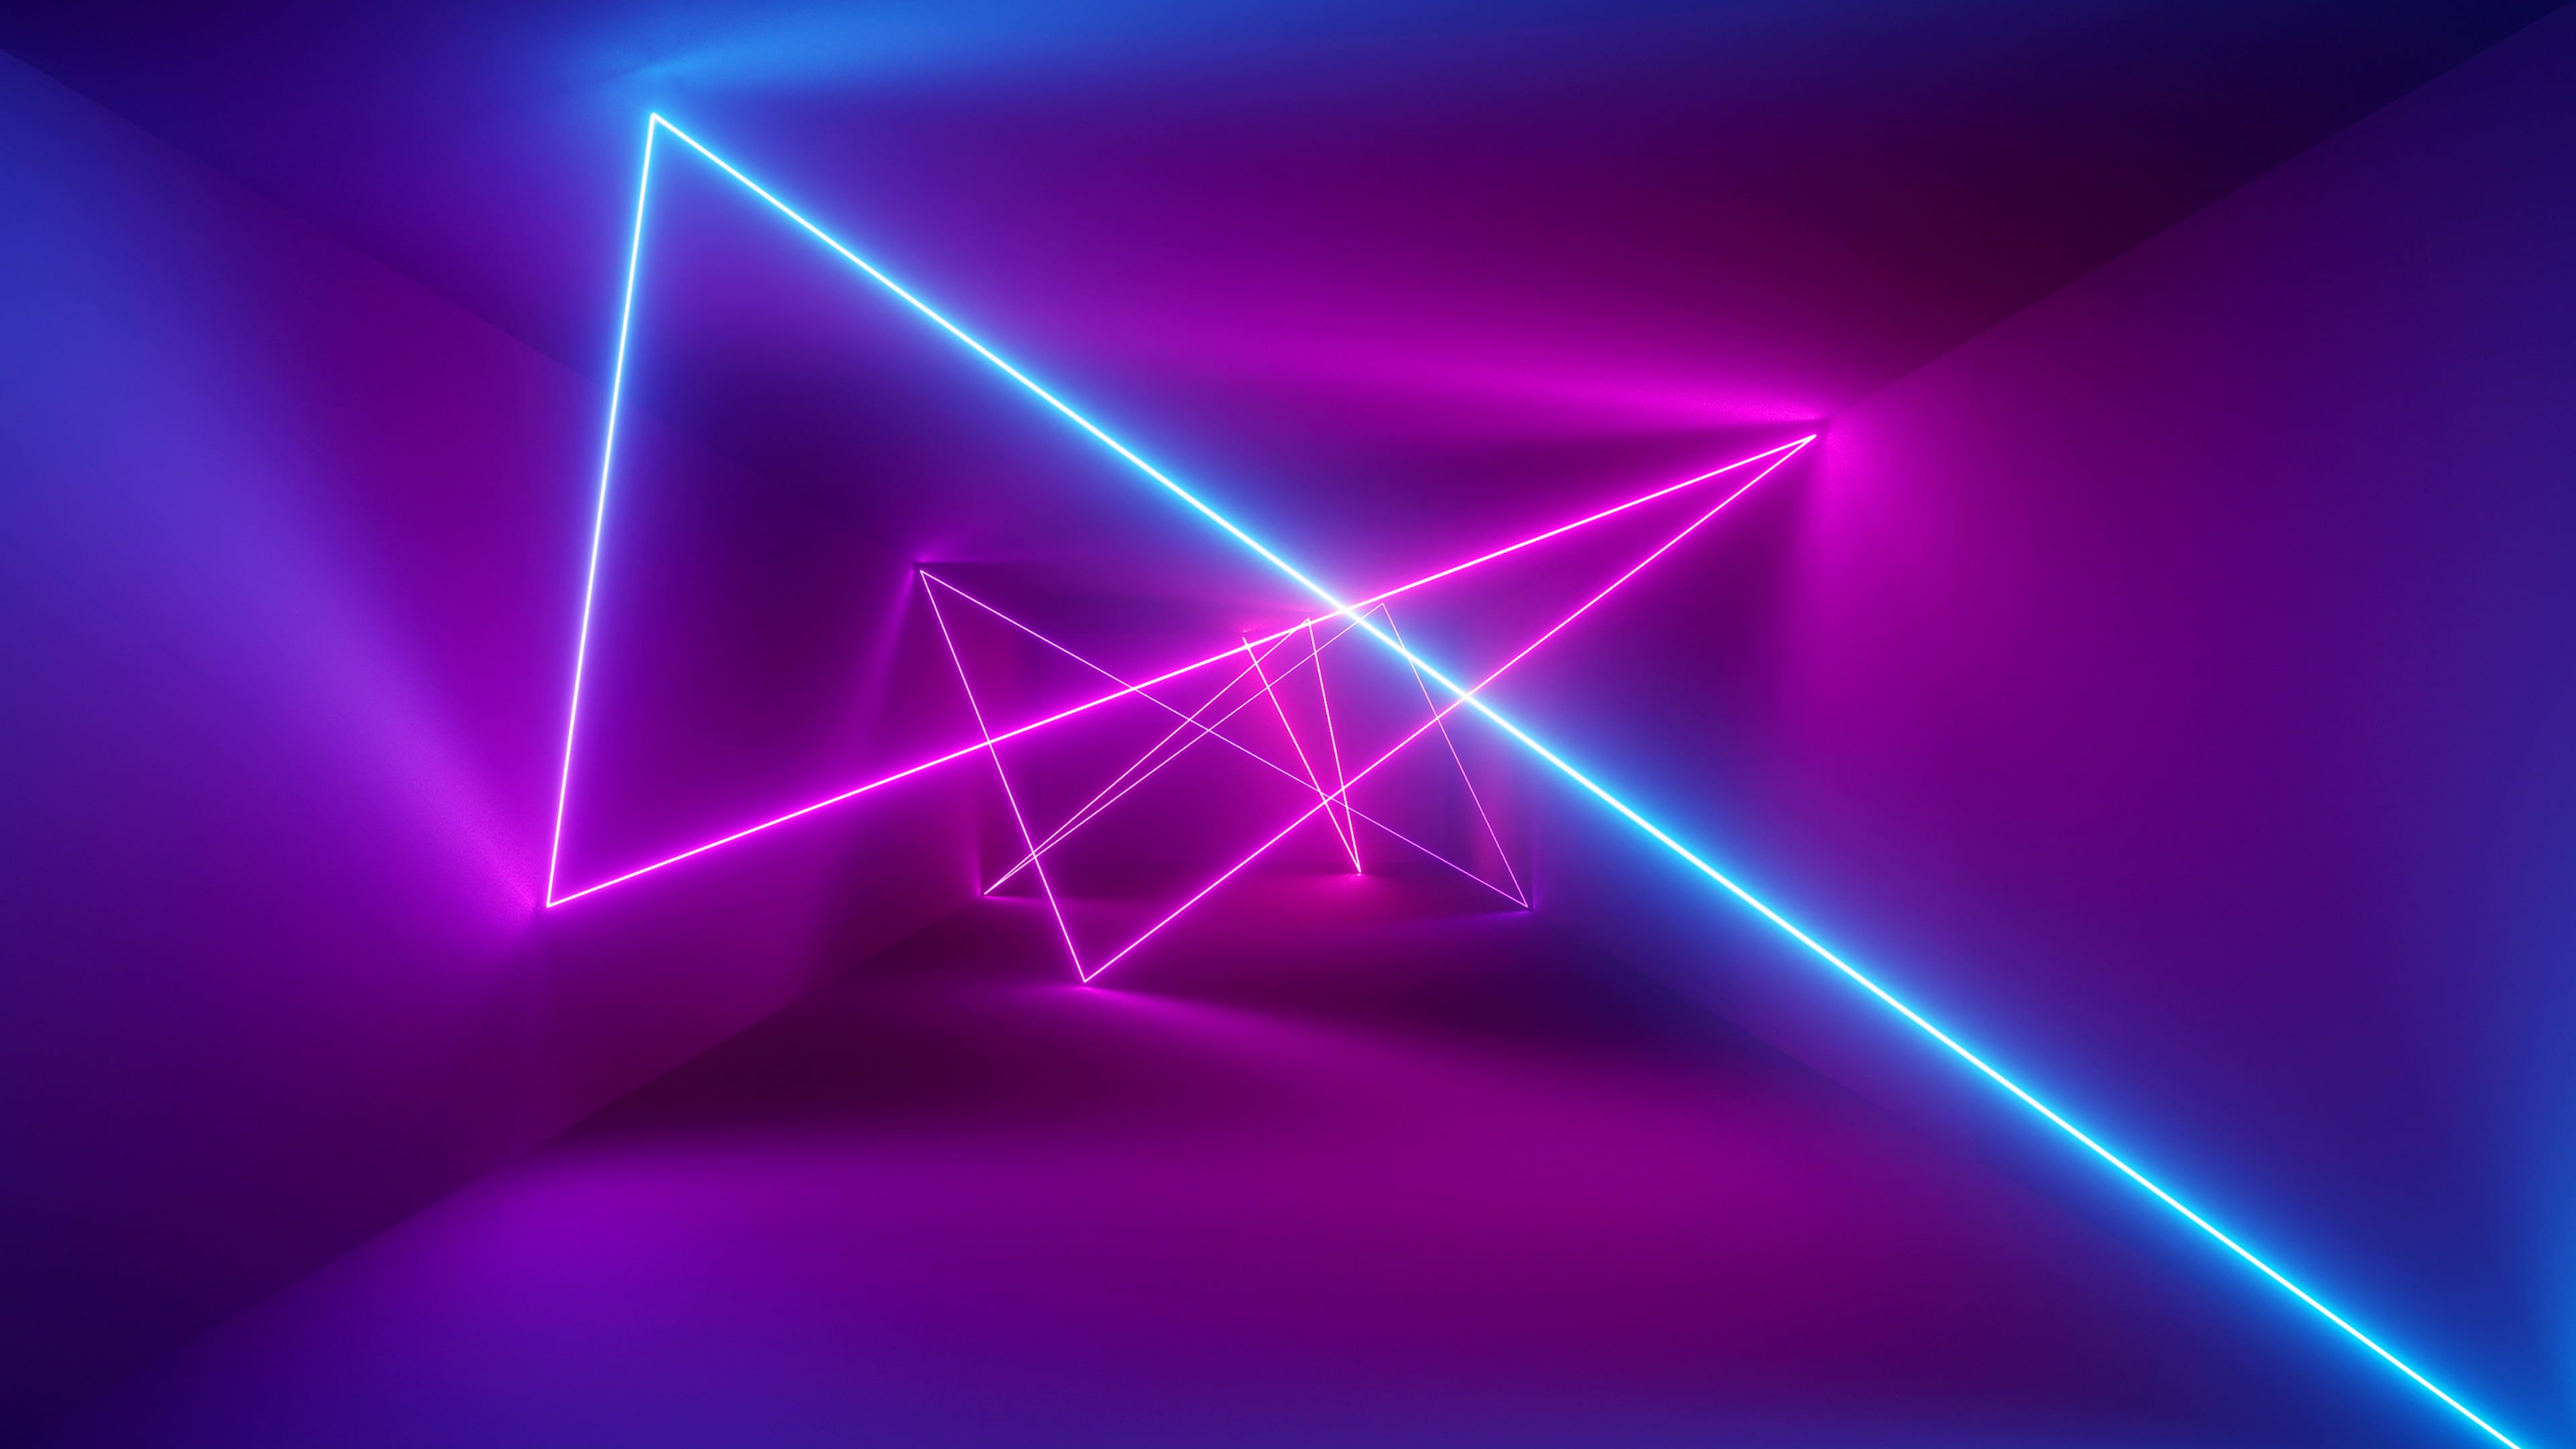 Abstract Neon Lights 4k Wallpaper Hdwallpaper Desktop In 2020 Neon Wallpaper Neon Desktop Wallpaper